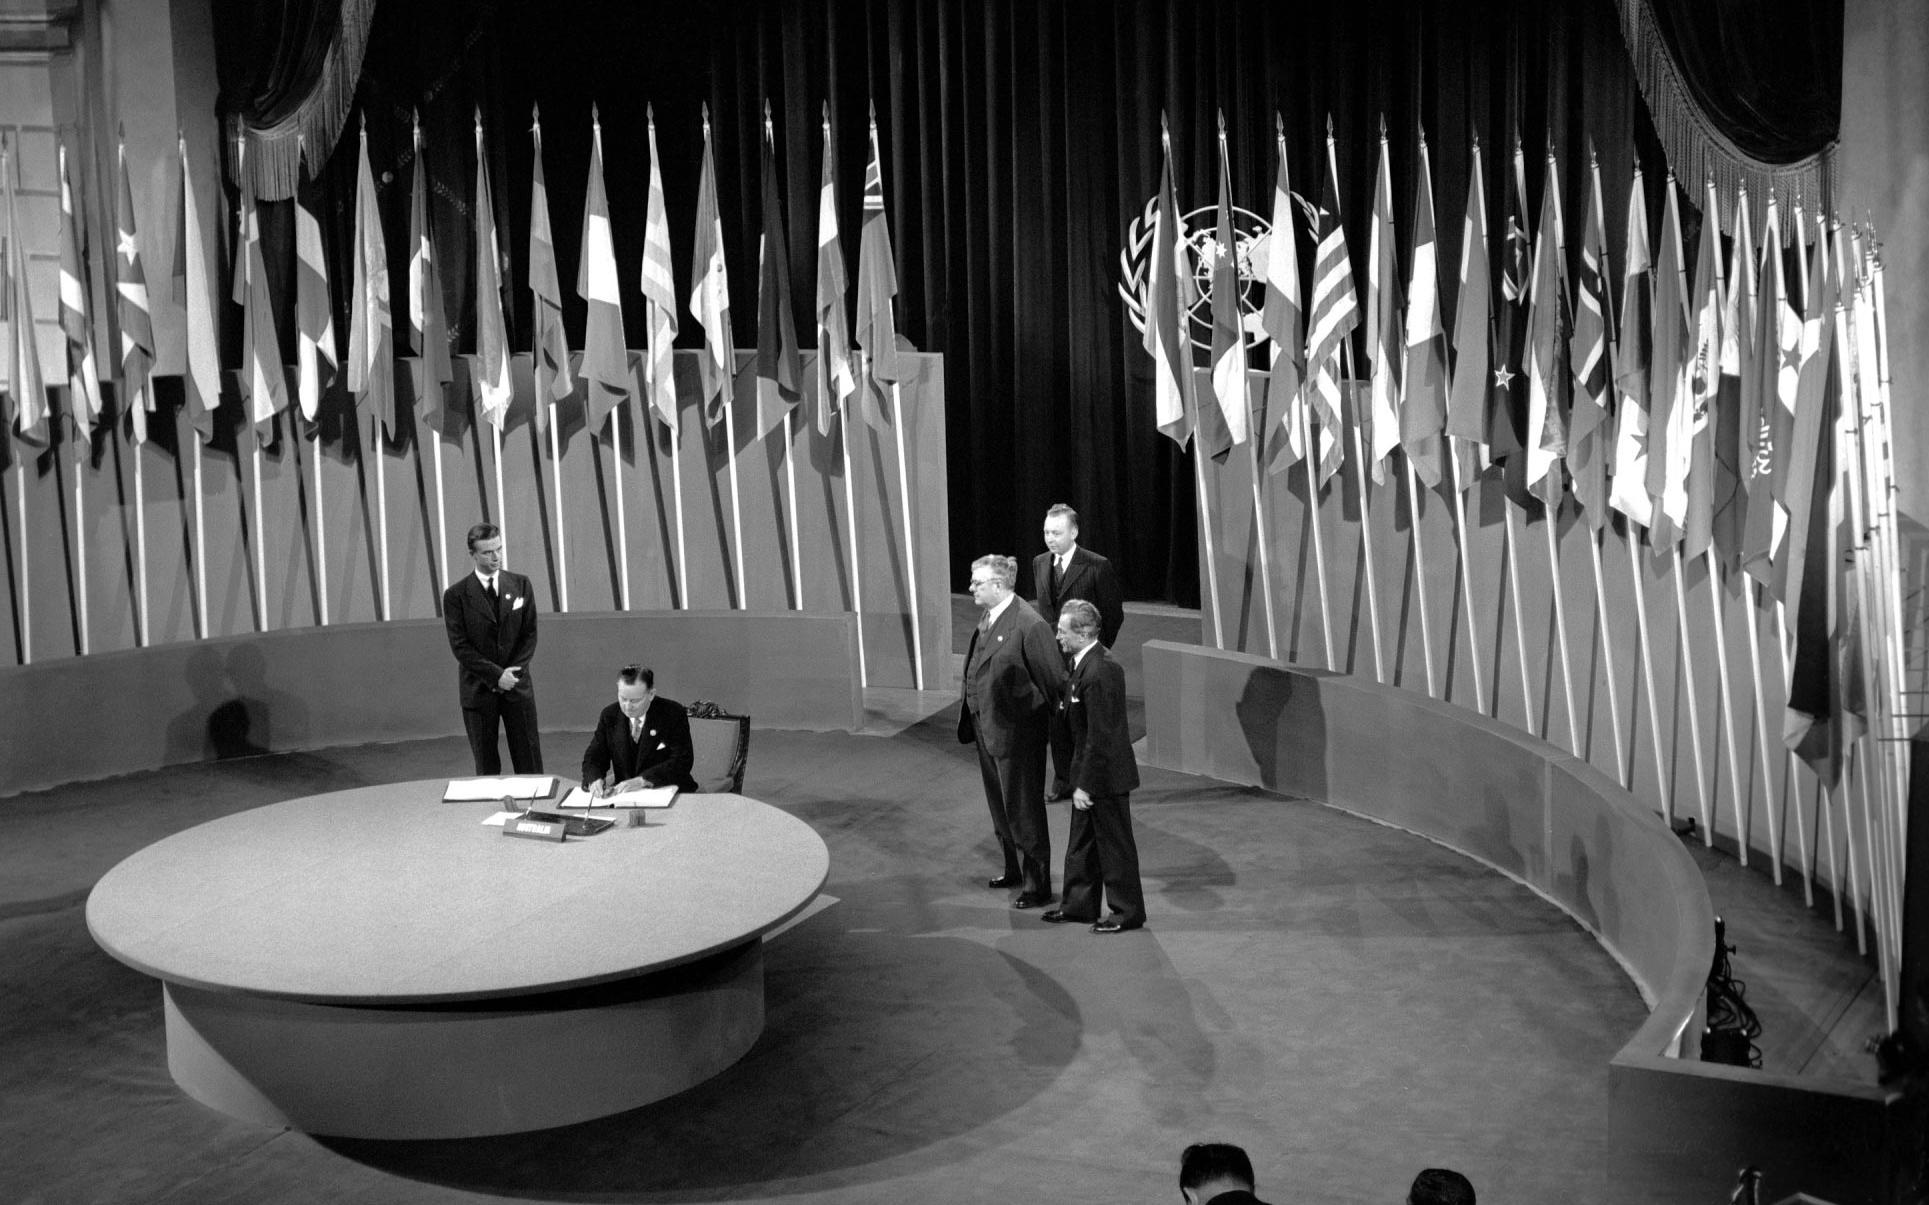 Francis Michael Forde, then Australia's Deputy Prime Minister, signing the UN Charter at a ceremony held in San Francisco, 26 June 1945